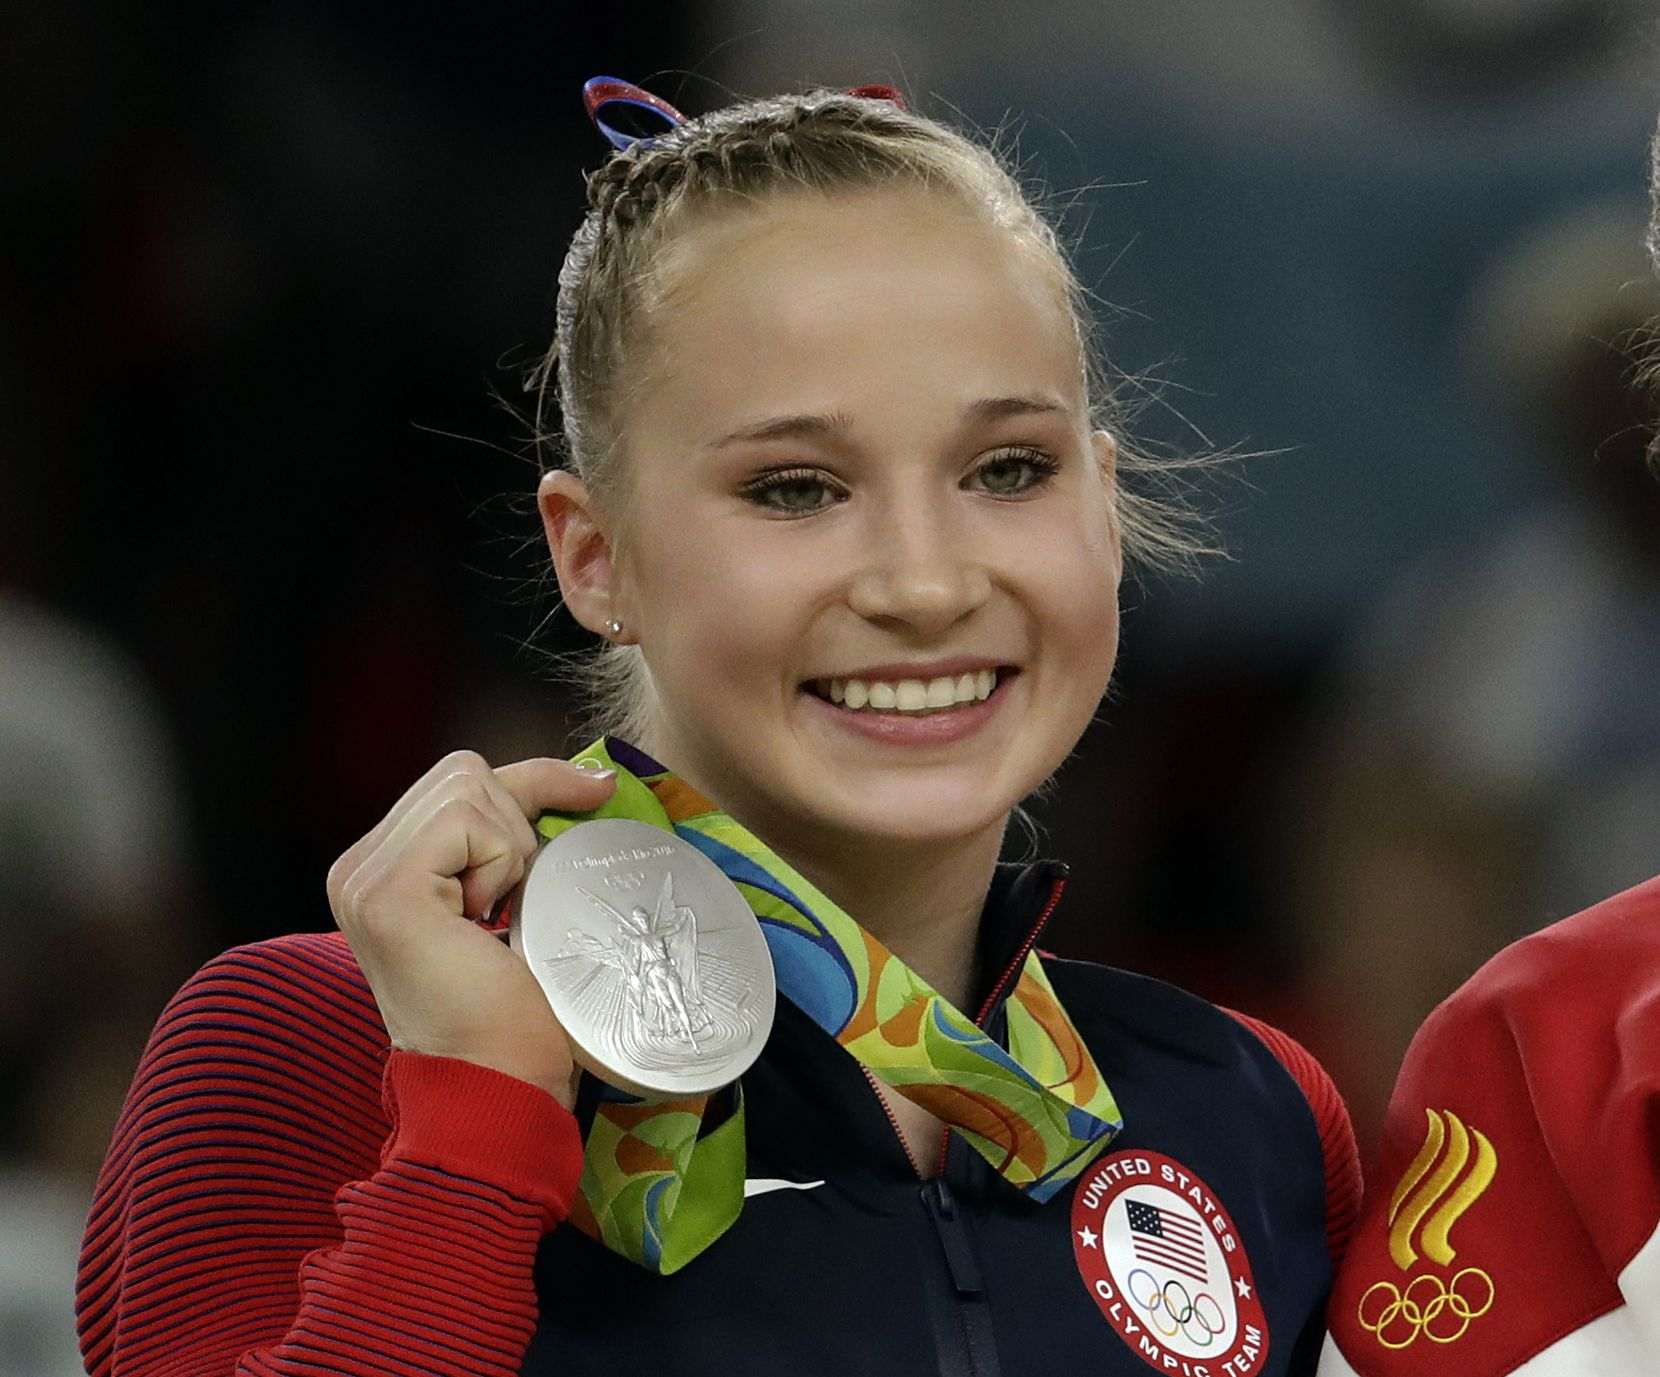 Madison Kocian. (AP Photo/Dmitri Lovetsky, File)